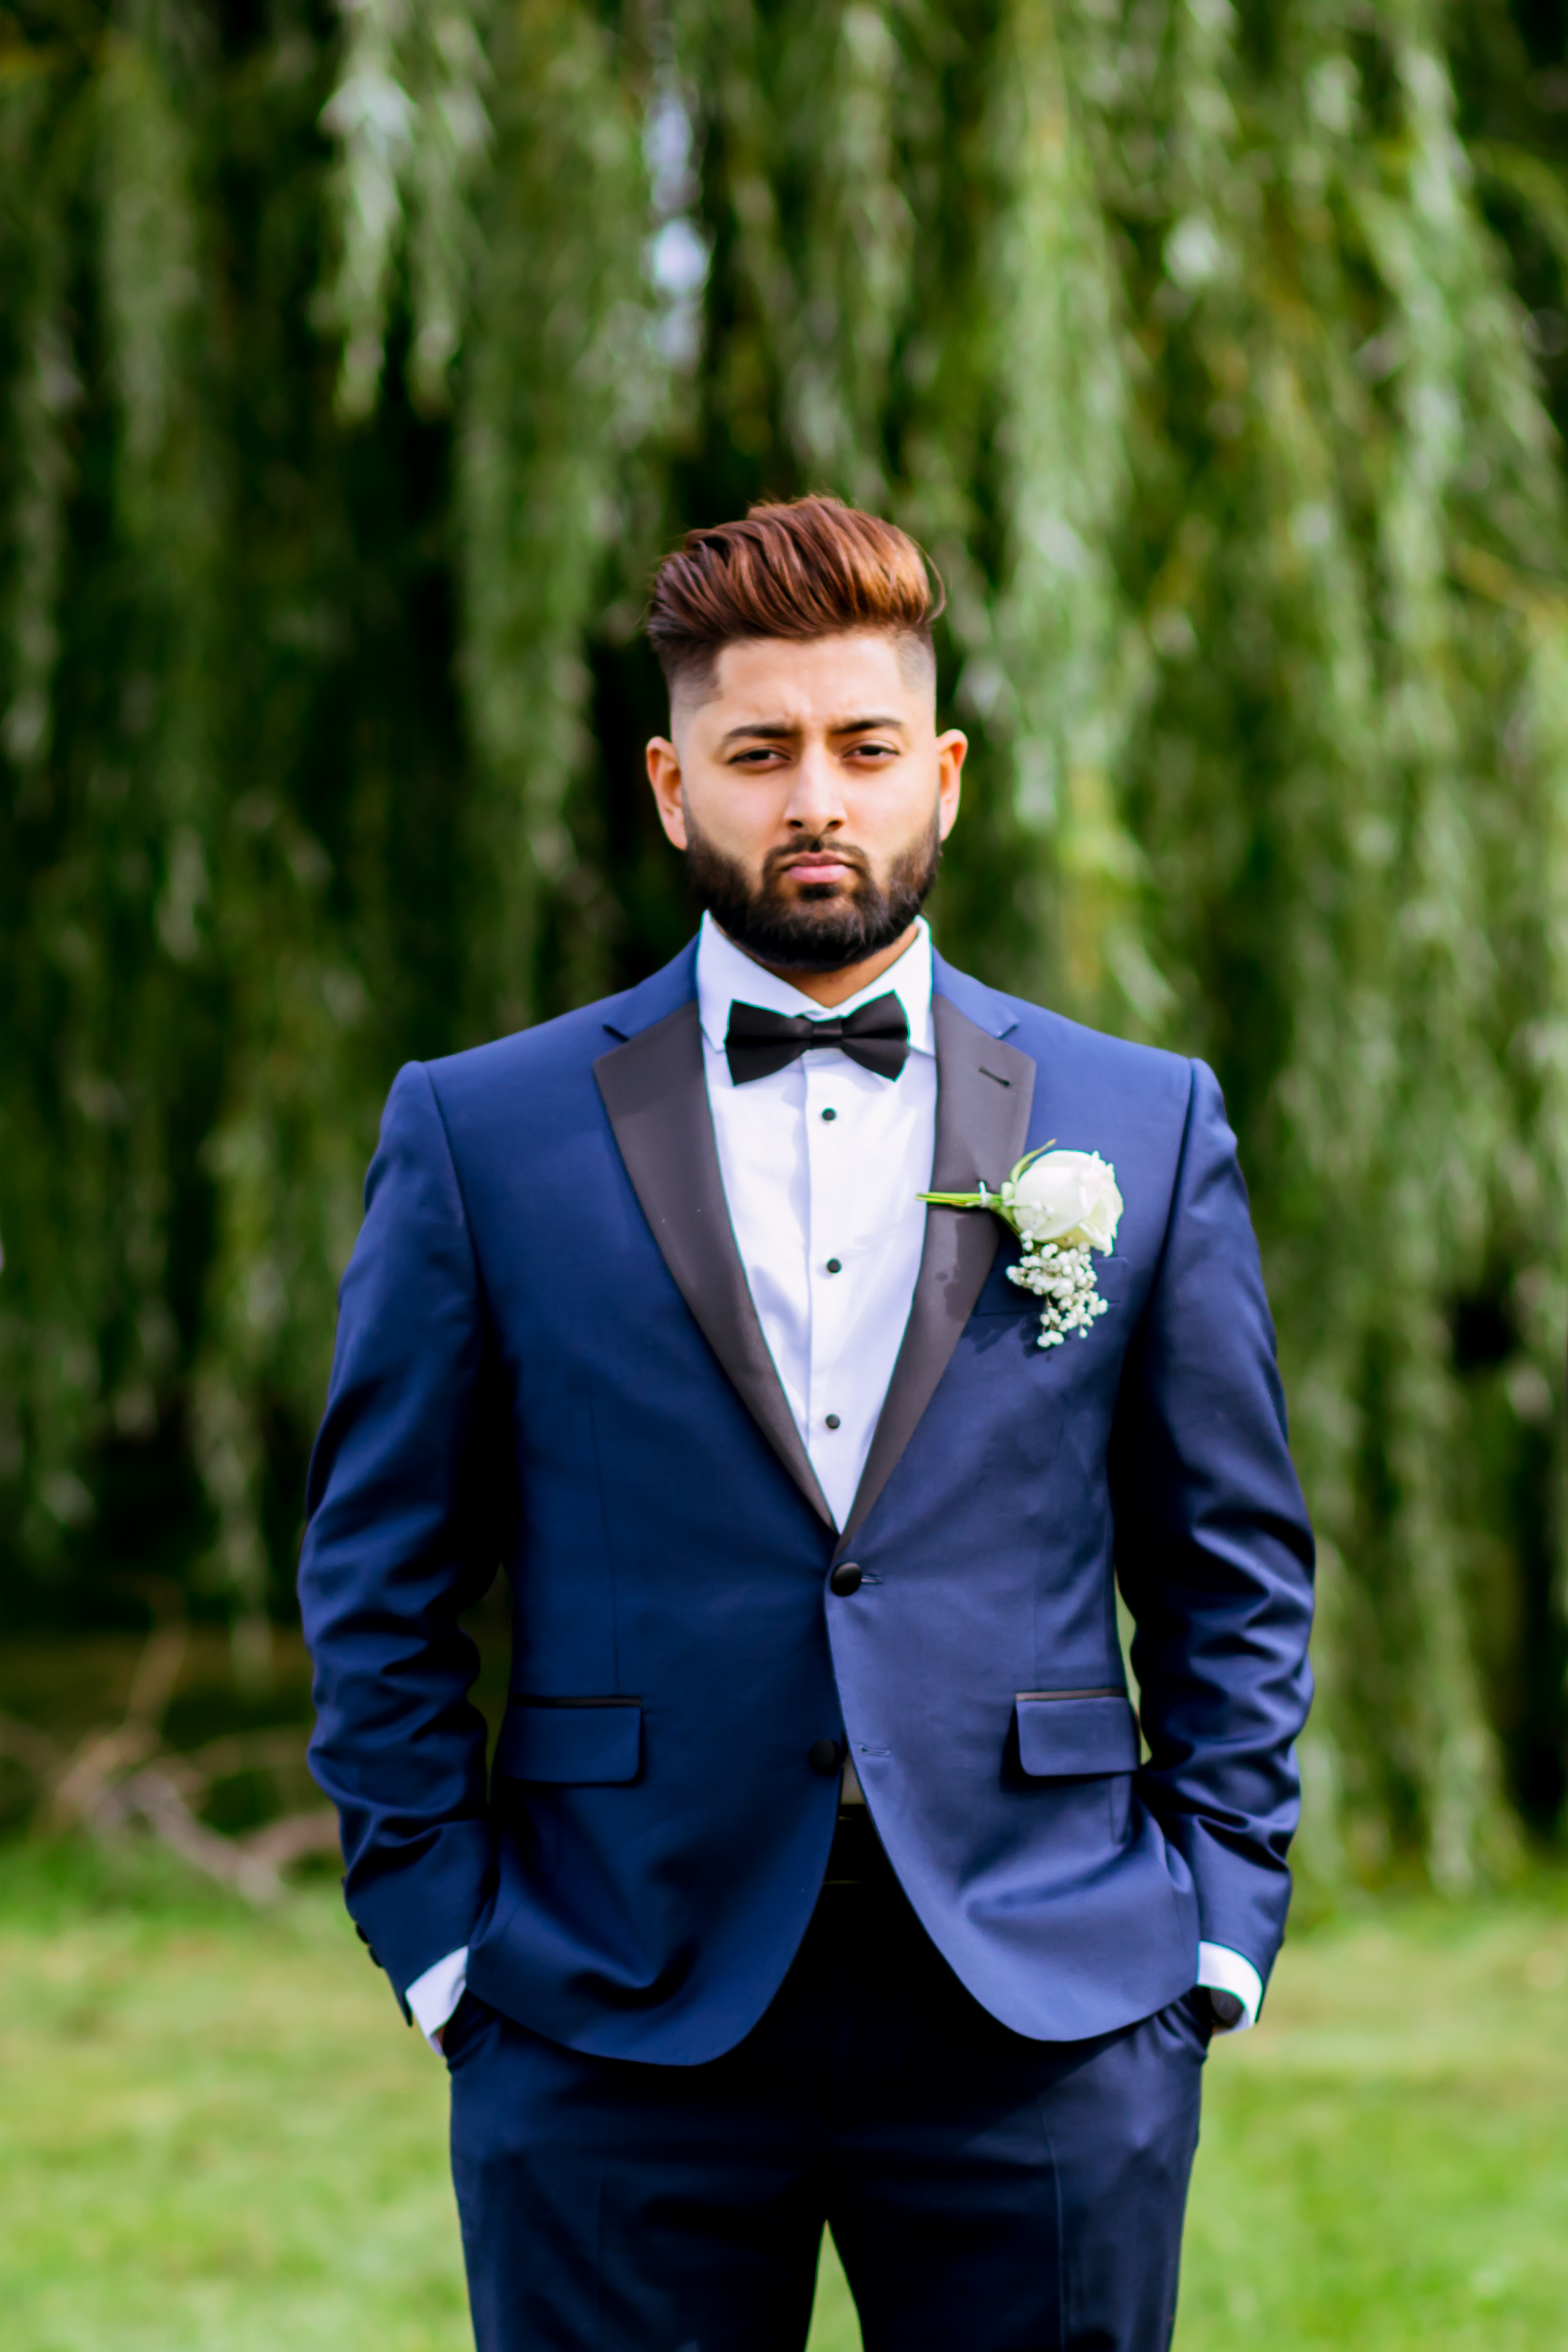 Karimah_Gheddai_Muslim_Chateau_Le_Jardin_Centennial_Park_GTA-Pakistani-Indian-Wedding-Engagement-Photographer-Photography_0001Karimah_Gheddai_Muslim_Sayeda_Khadija_Centre_Kariya_Park_GTA-Pakistani-Indian-Wedding-Engagement-Multicultural_Photographer-Photography_Groom_0016